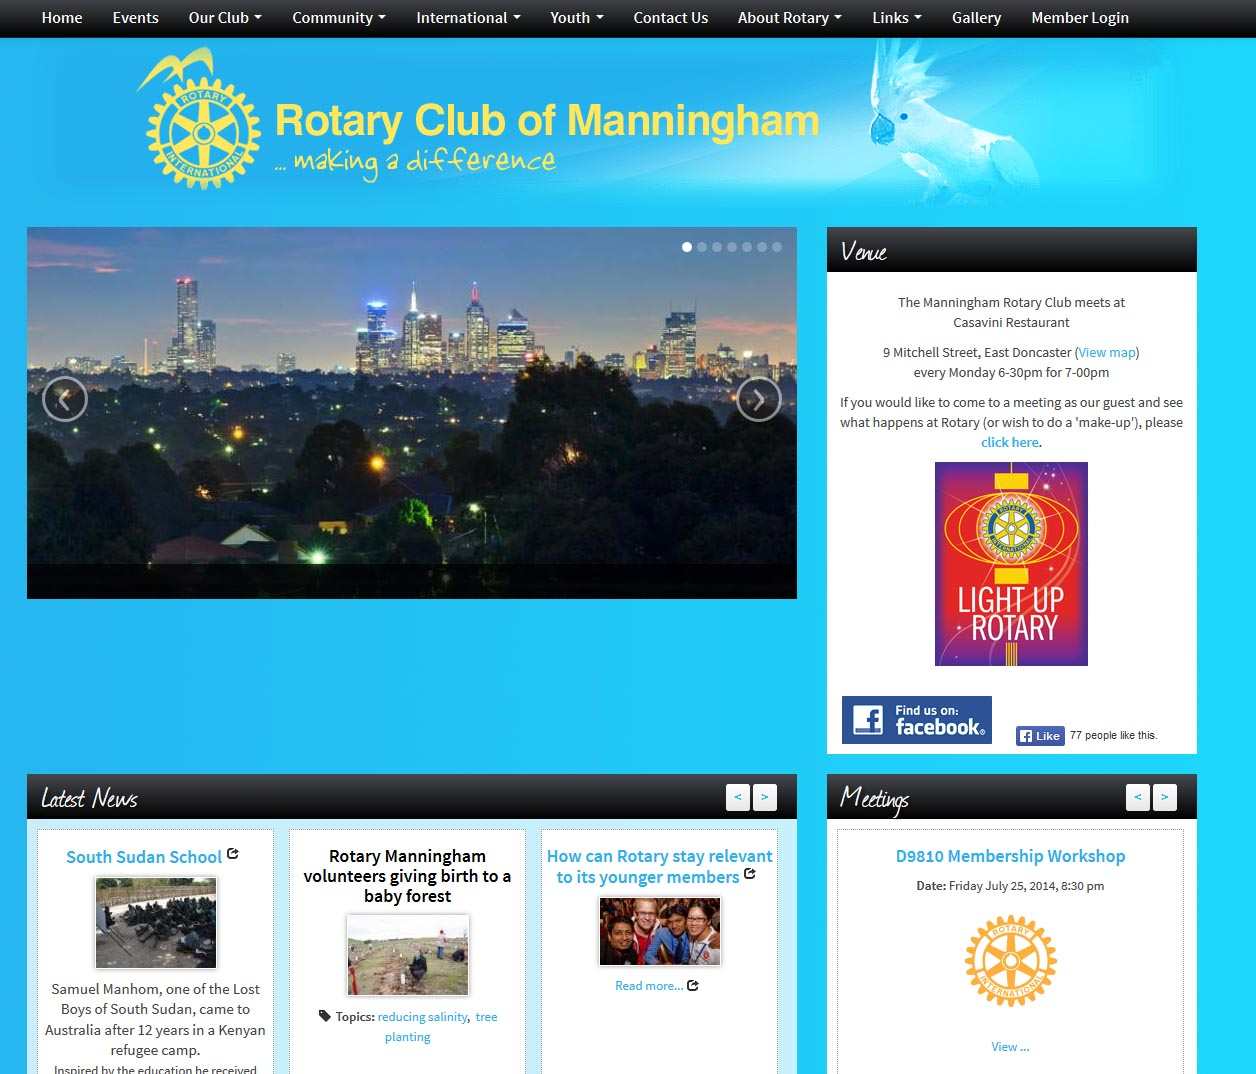 Rotary Club of Manningham